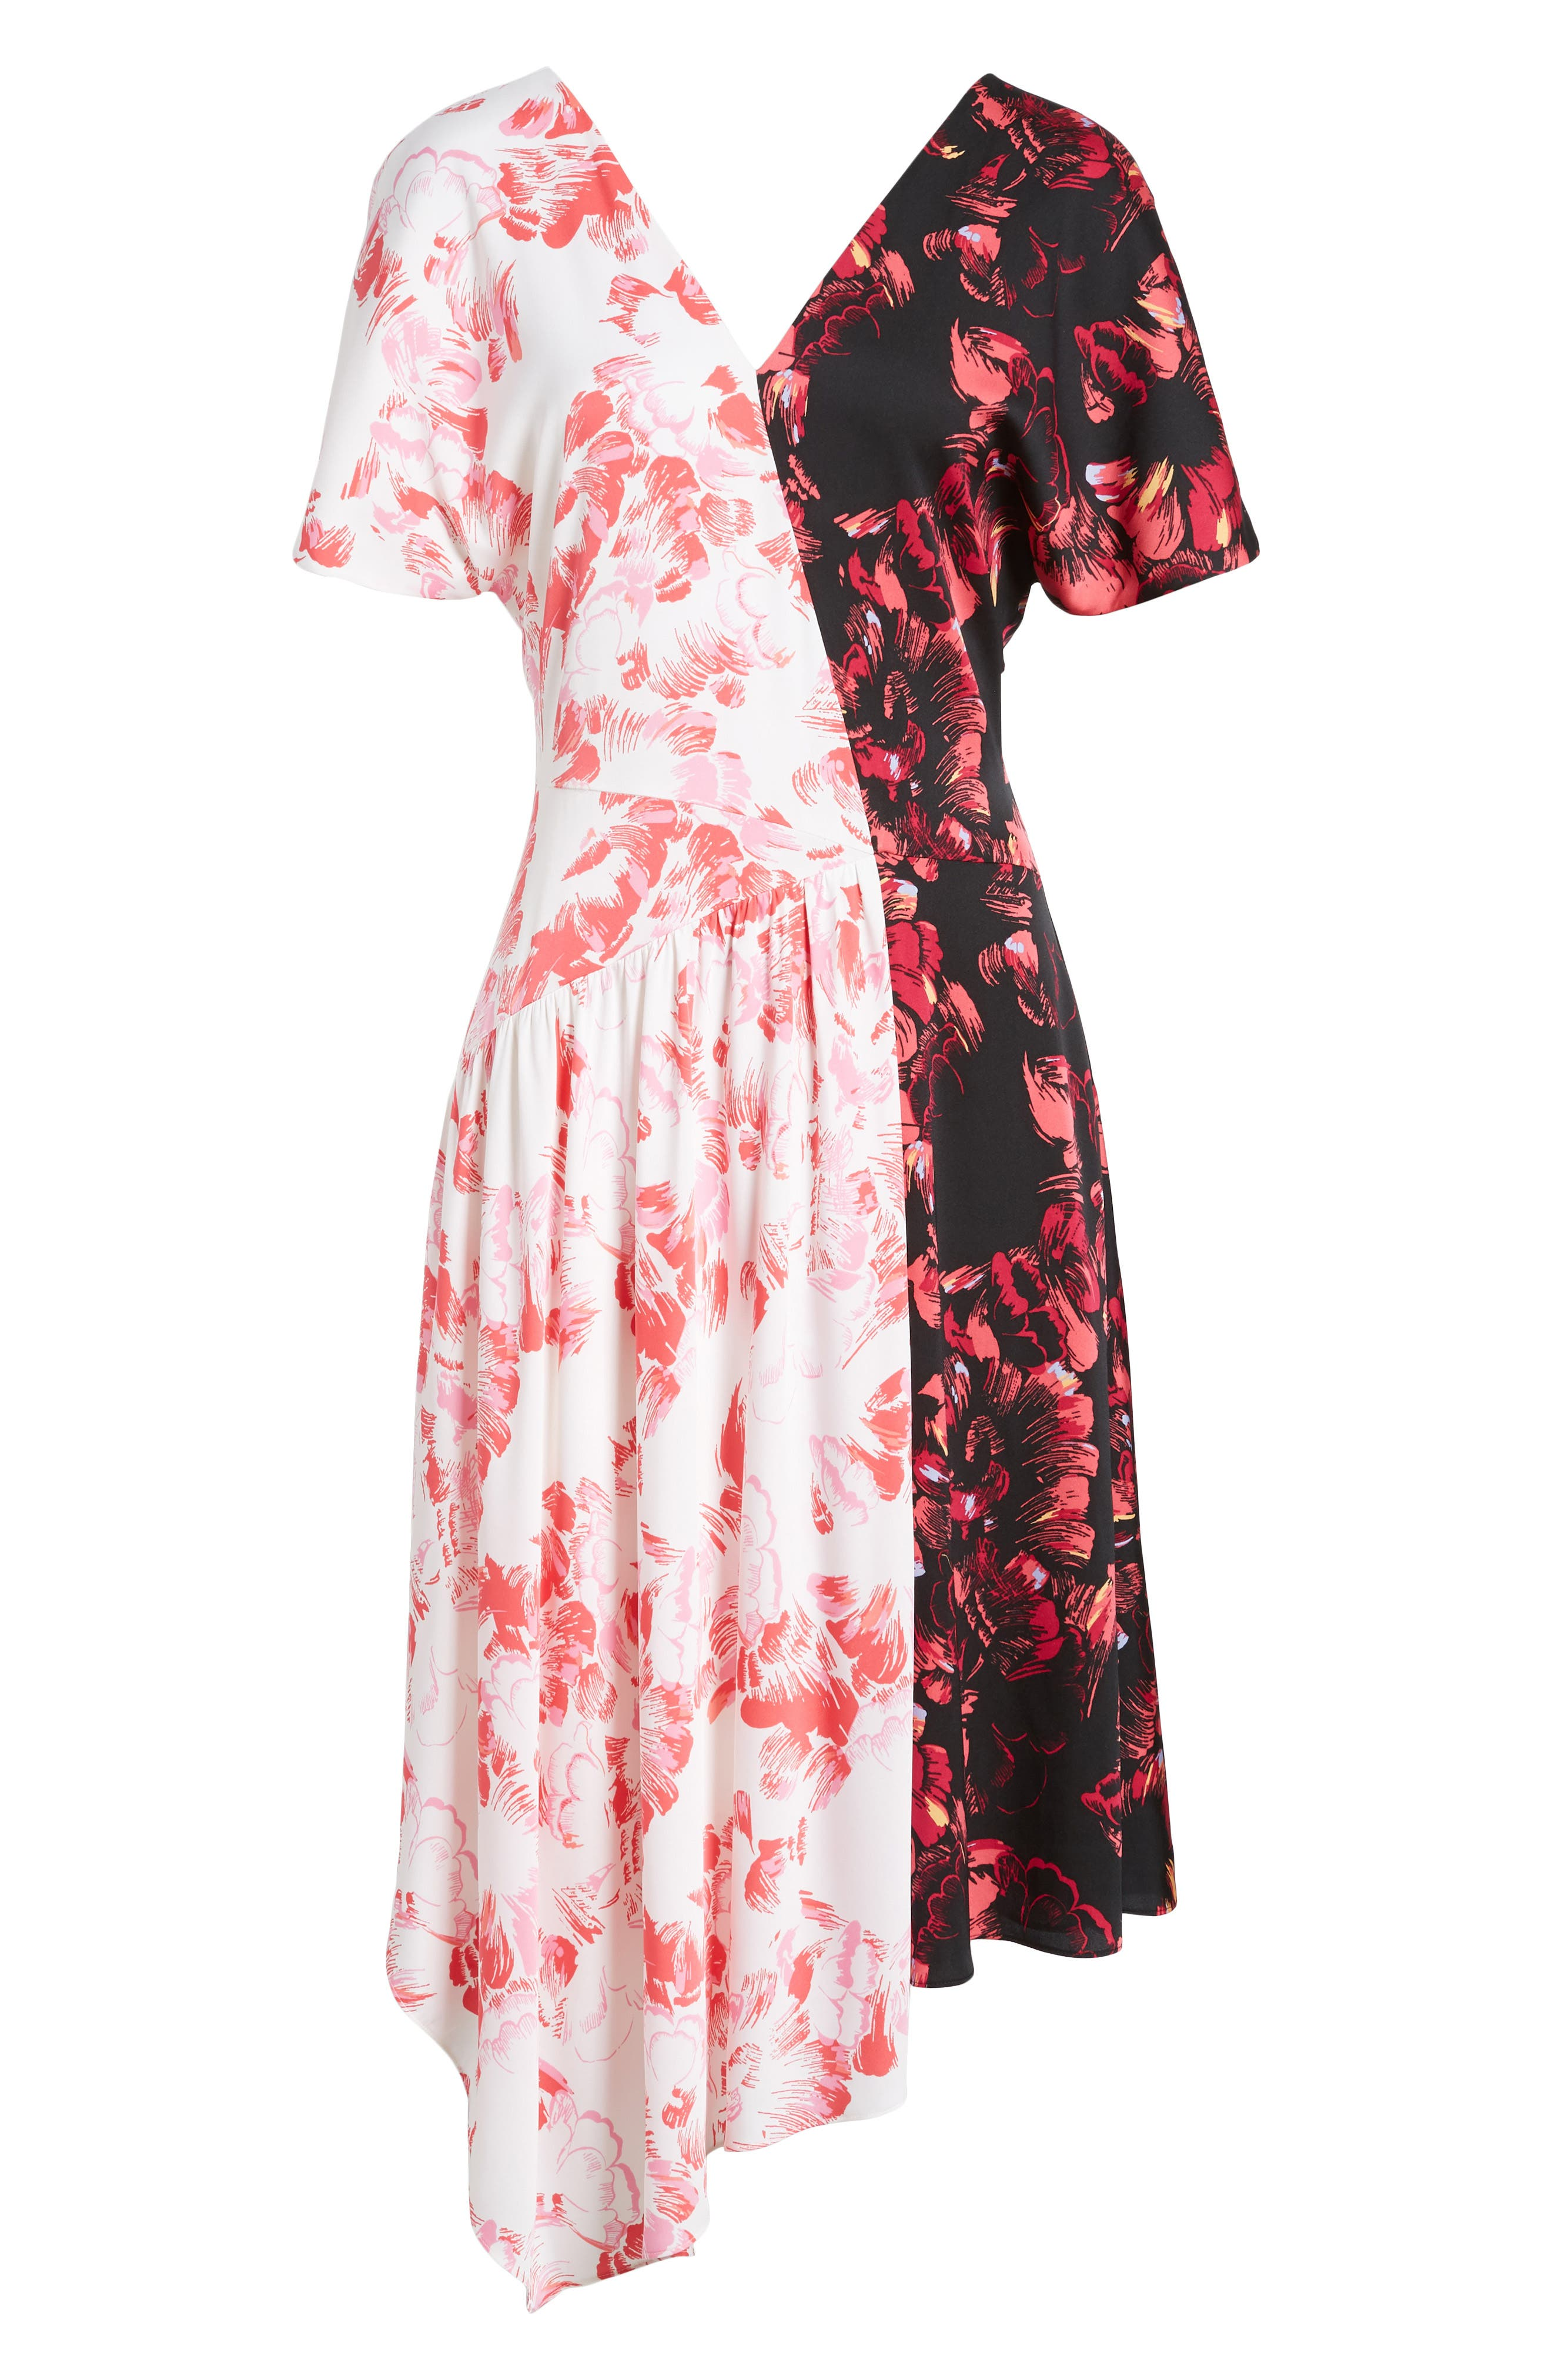 Double Print Floral Stretch Silk Dress,                             Alternate thumbnail 6, color,